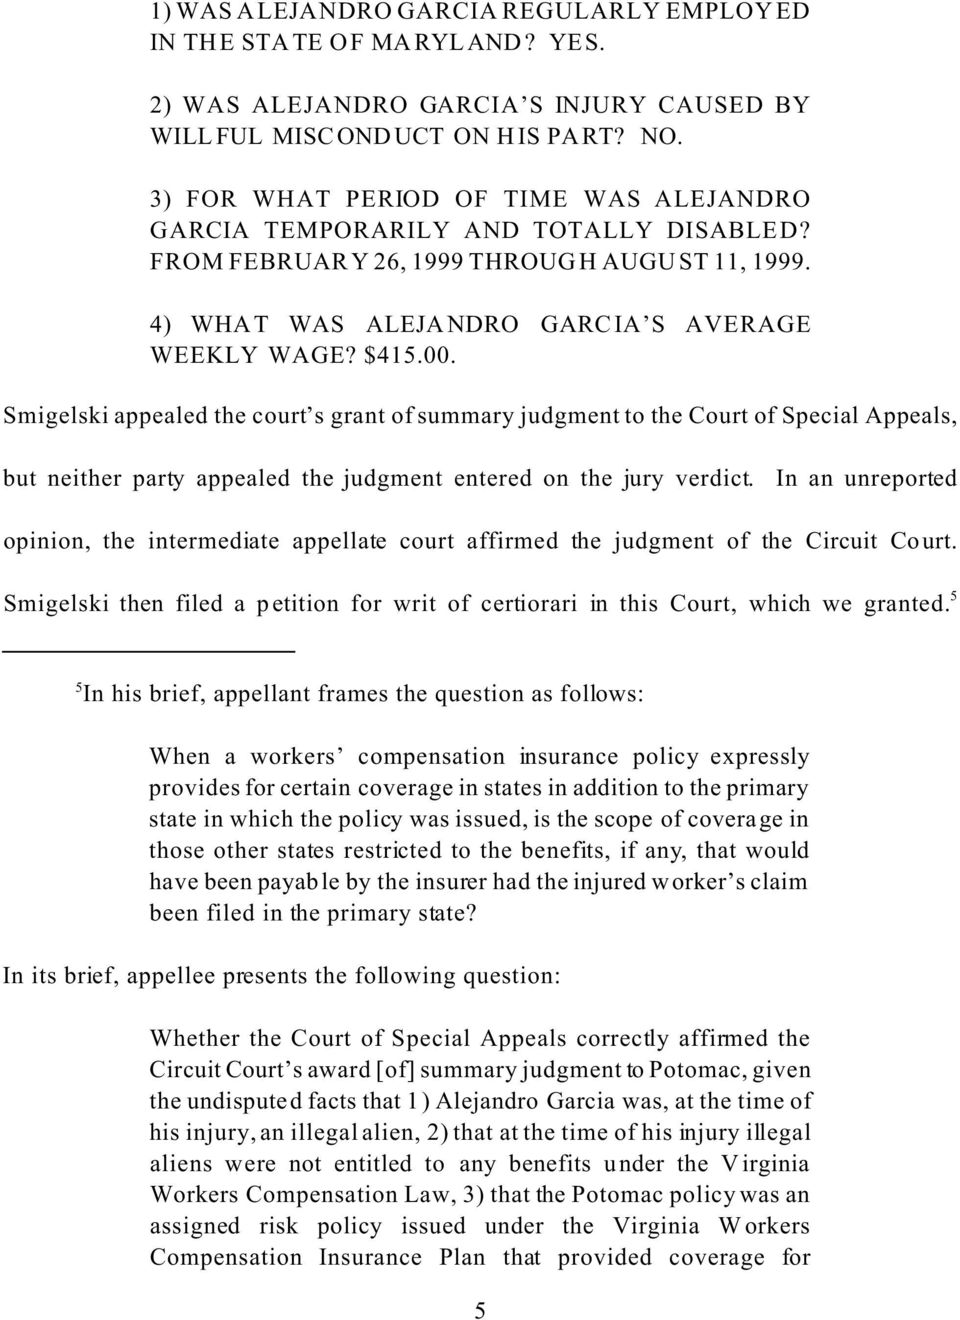 Smigelski appealed the court s grant of summary judgment to the Court of Special Appeals, but neither party appealed the judgment entered on the jury verdict.